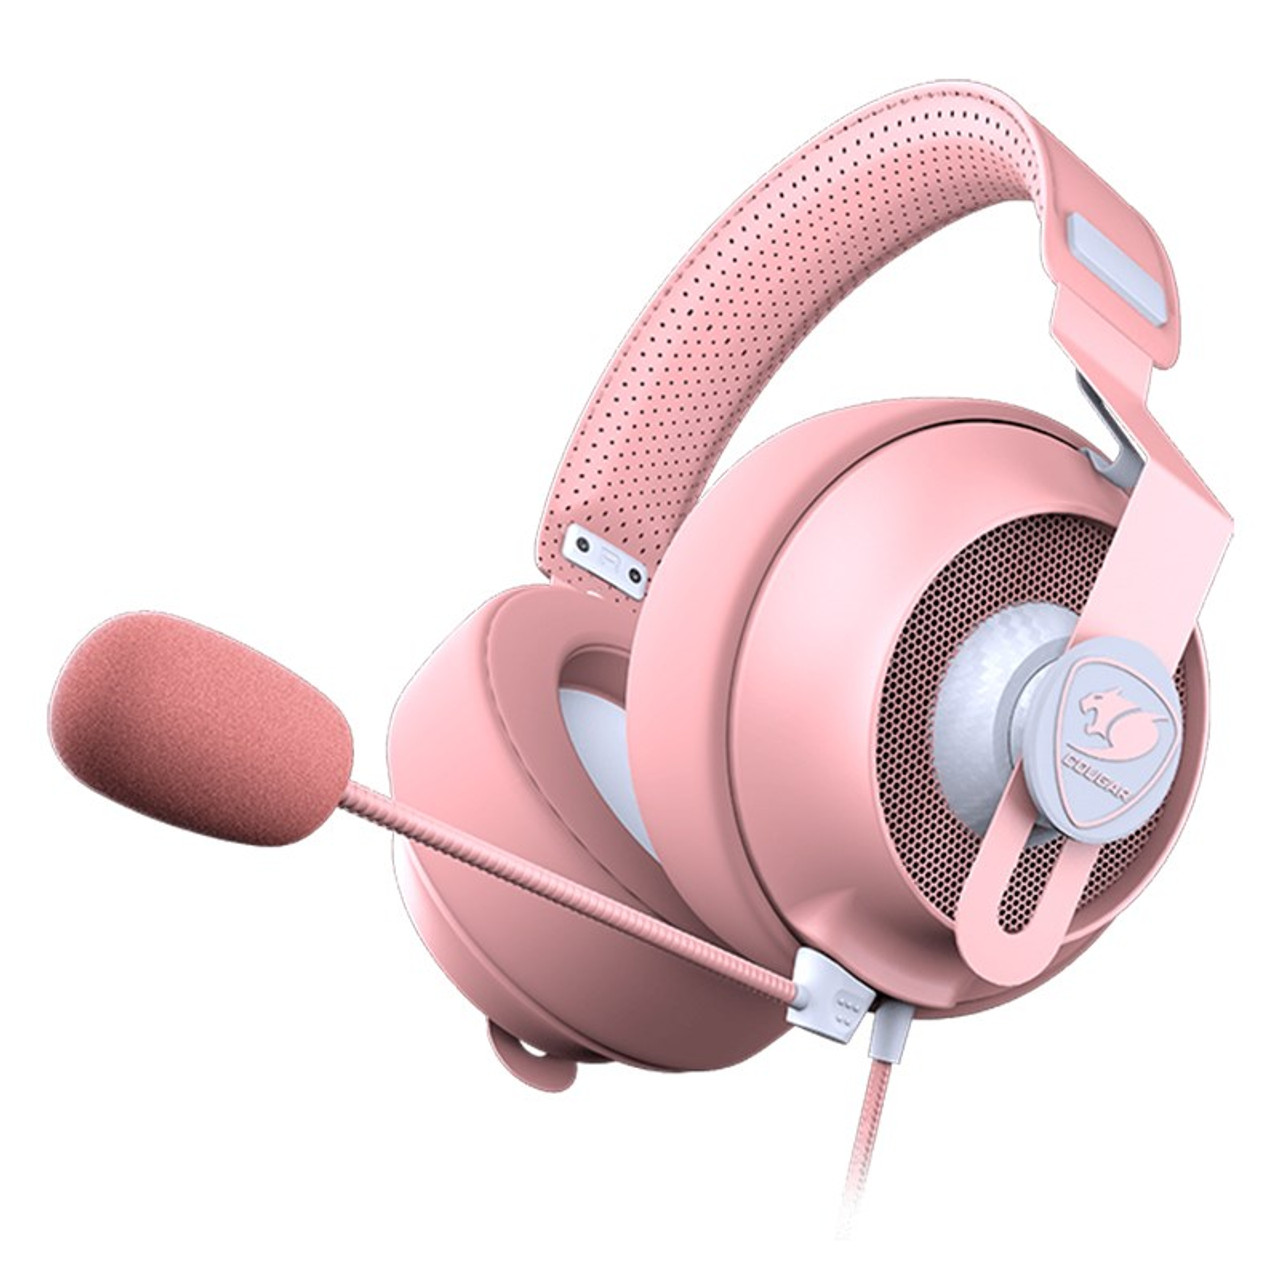 Image for Cougar Phontum S Wired Gaming Headset - Pink CX Computer Superstore